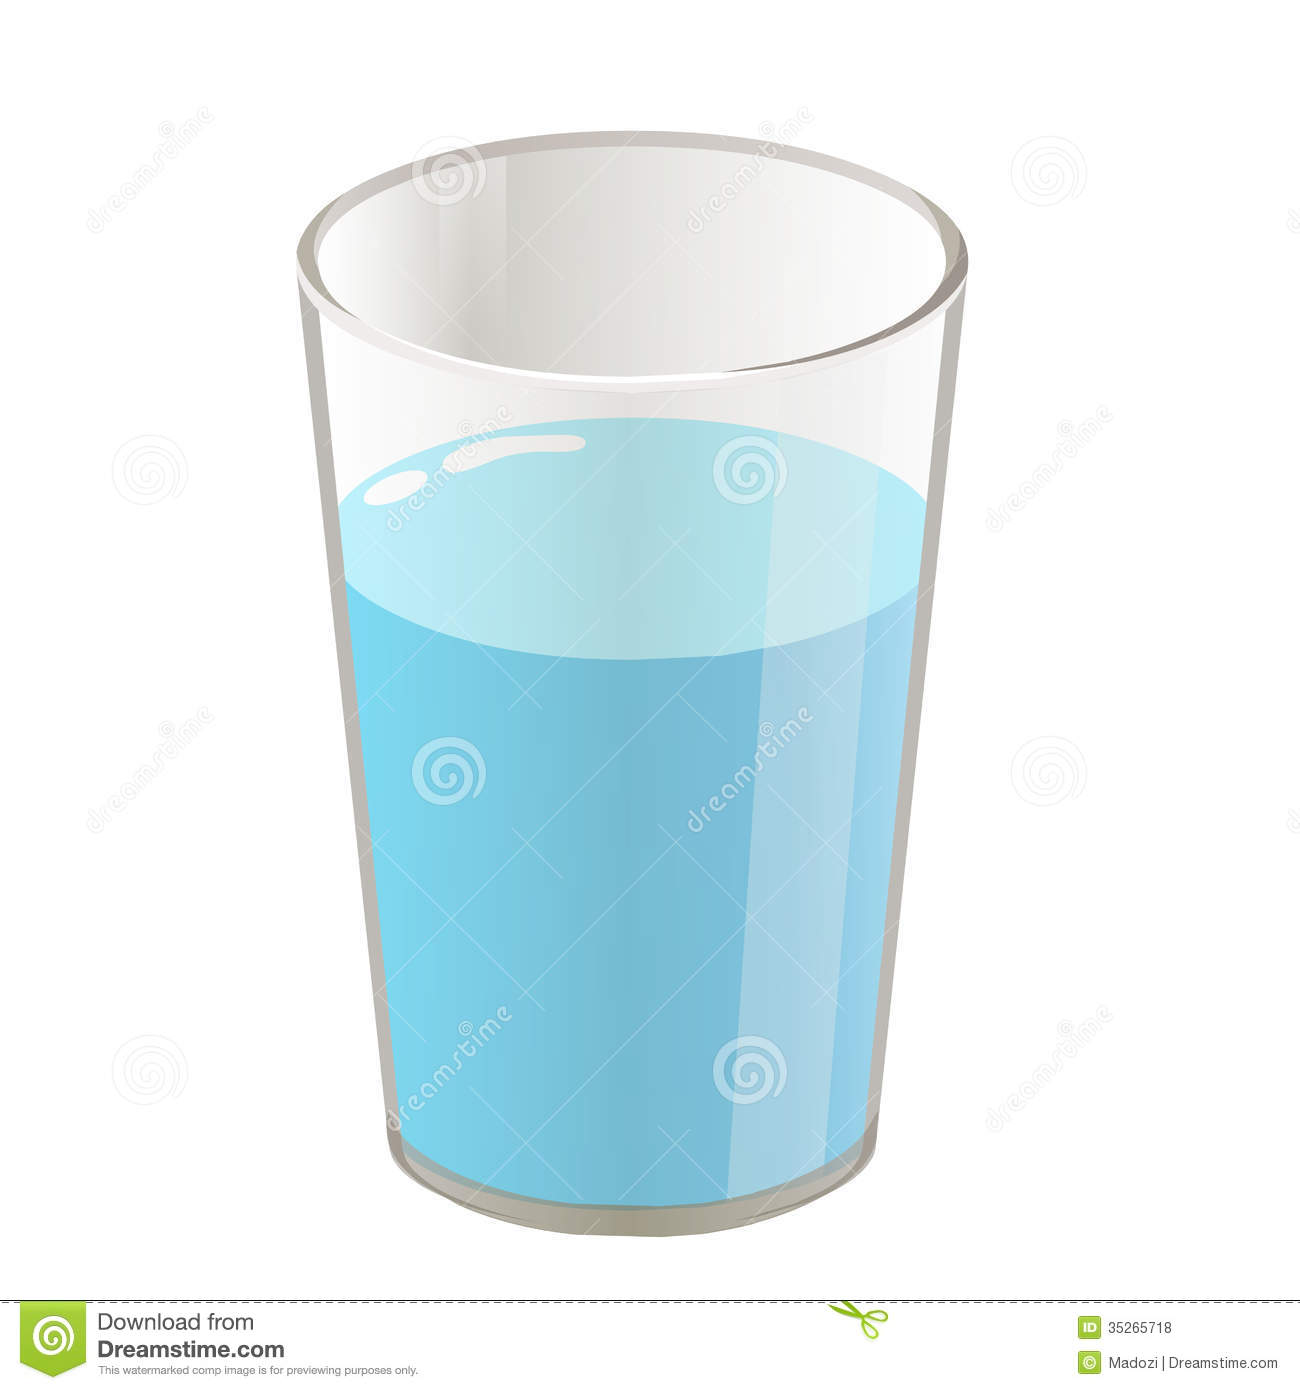 Glass Of Water Clip Art Glass With Water Isolated - Clipart Kid: www.clipartkid.com/glass-of-water-clip-art-glass-with-water...